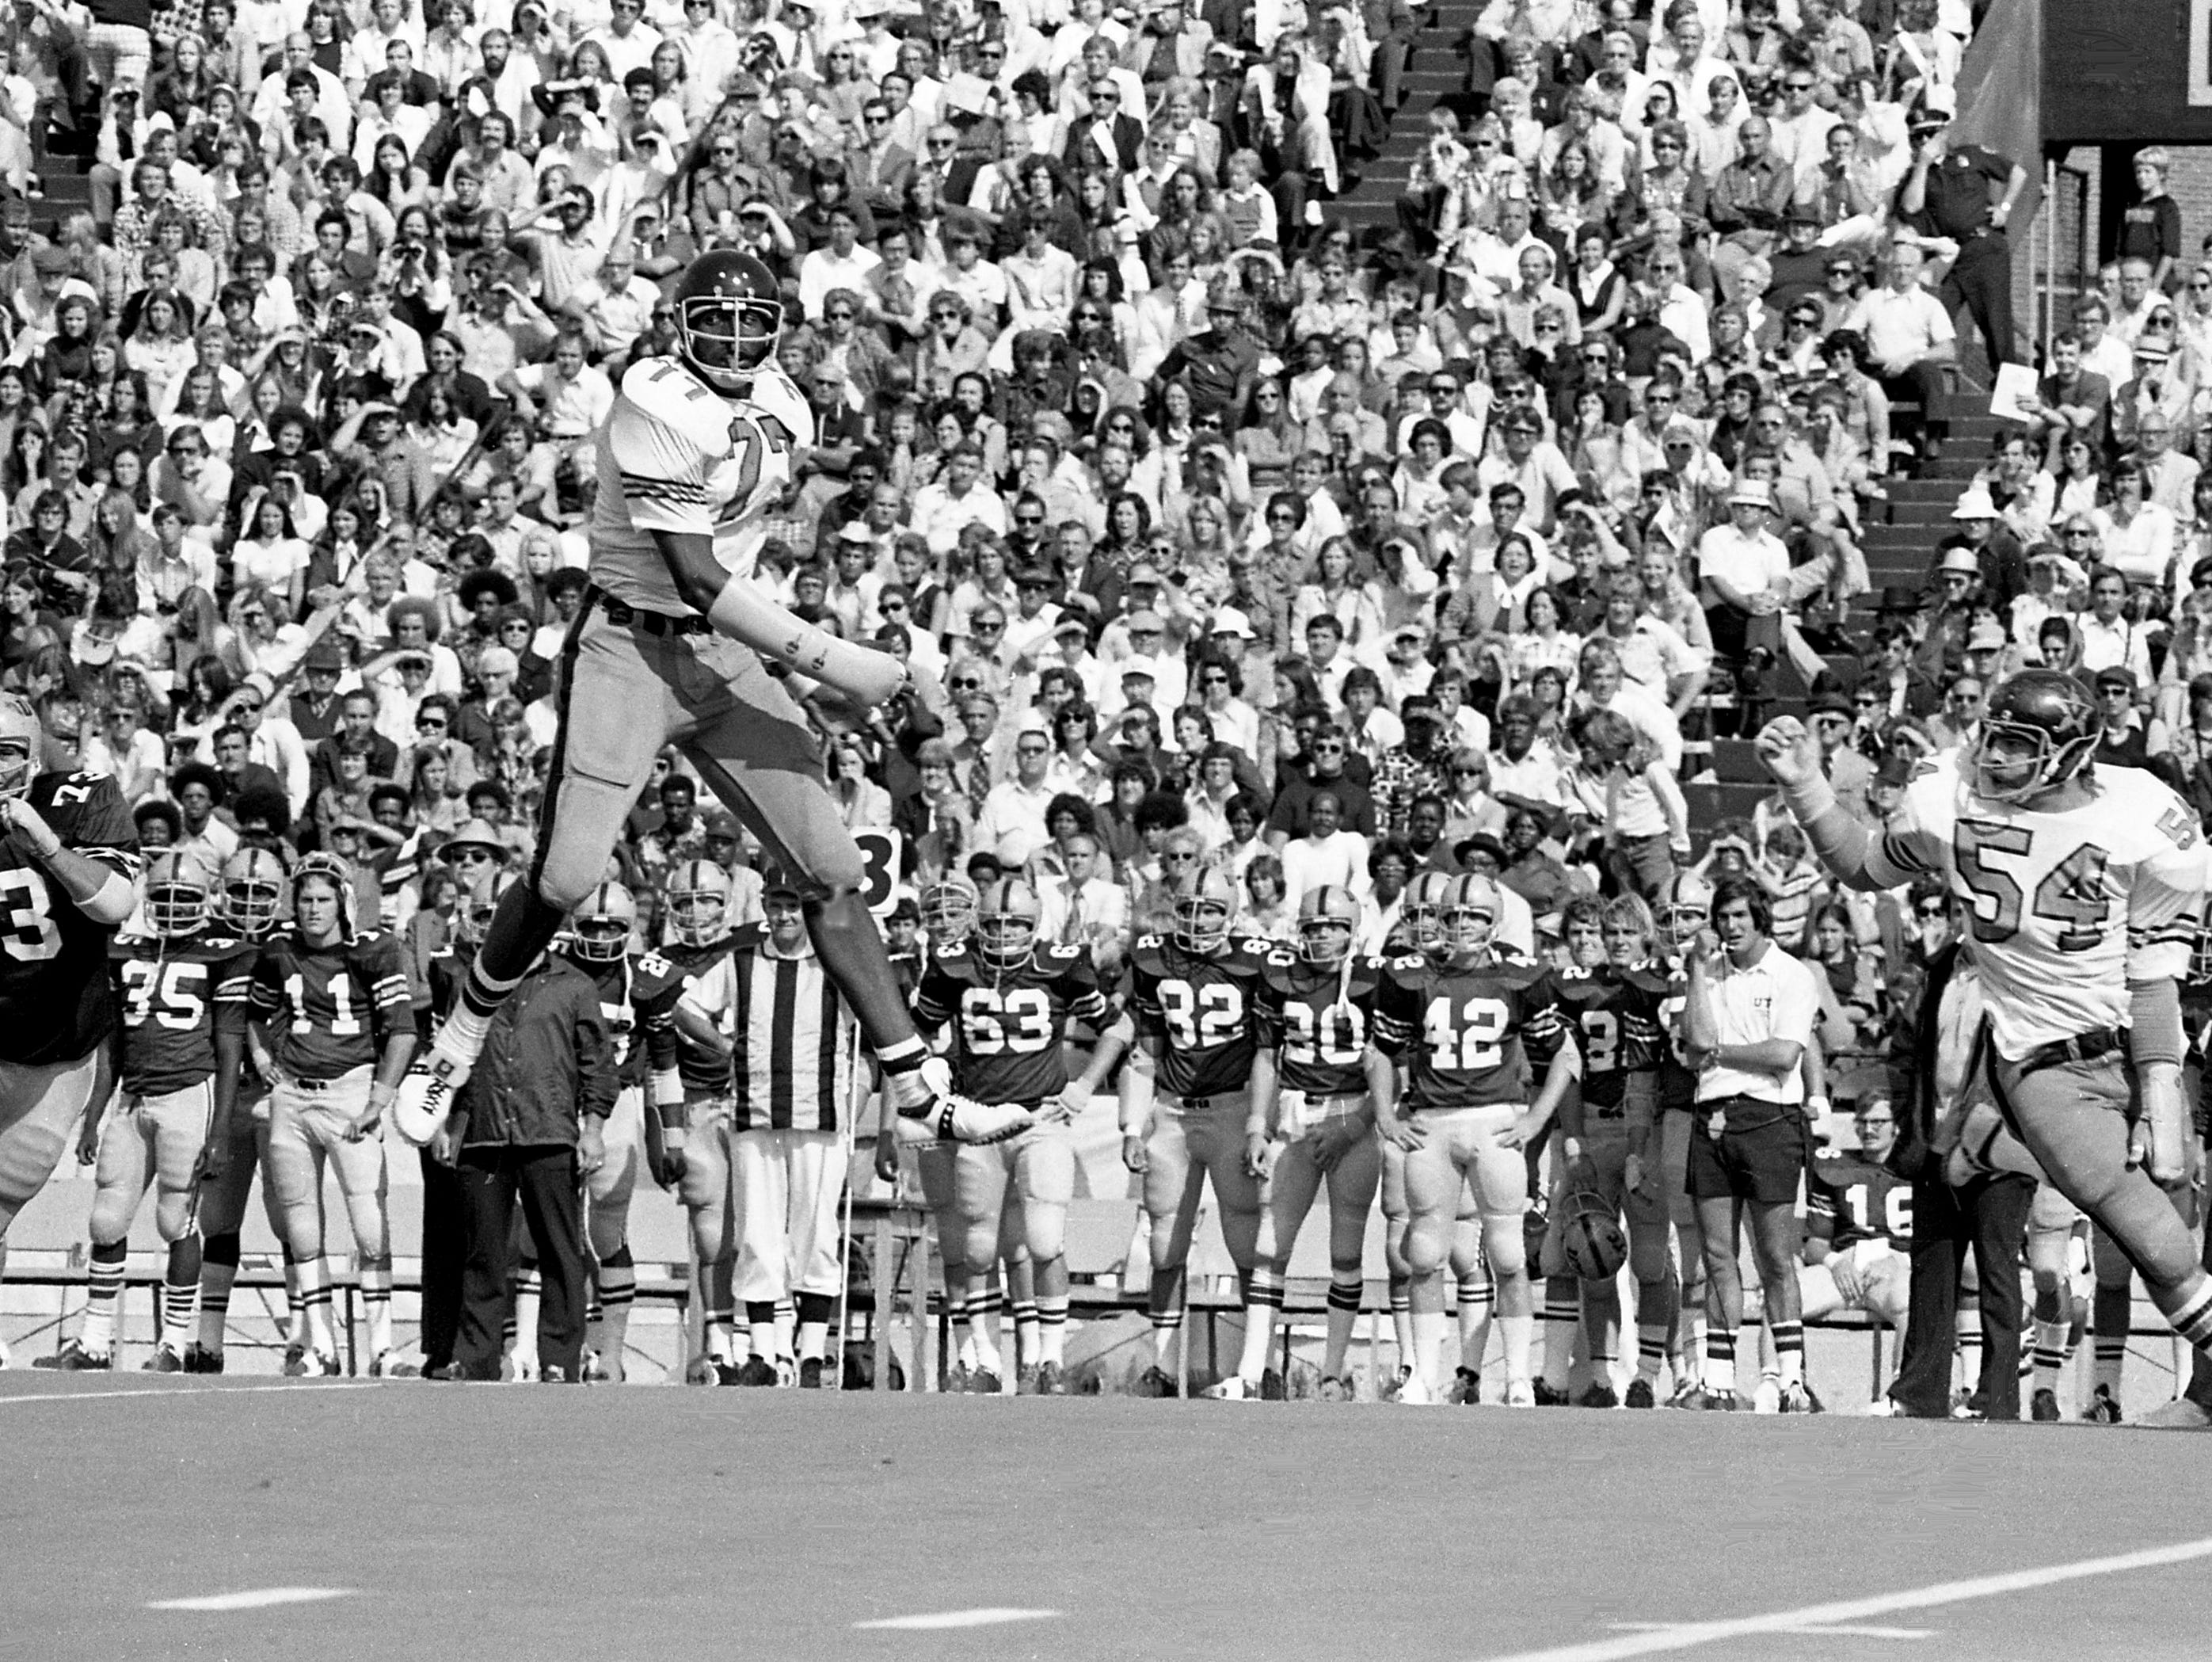 Vanderbilt defensive lineman Dennis Harrison (77) jumps high in the air on a pass play as teammate linebacker Tom Galbierz (54) looks on against UT-Chattanooga at Dudley Field Sept. 14, 1974.